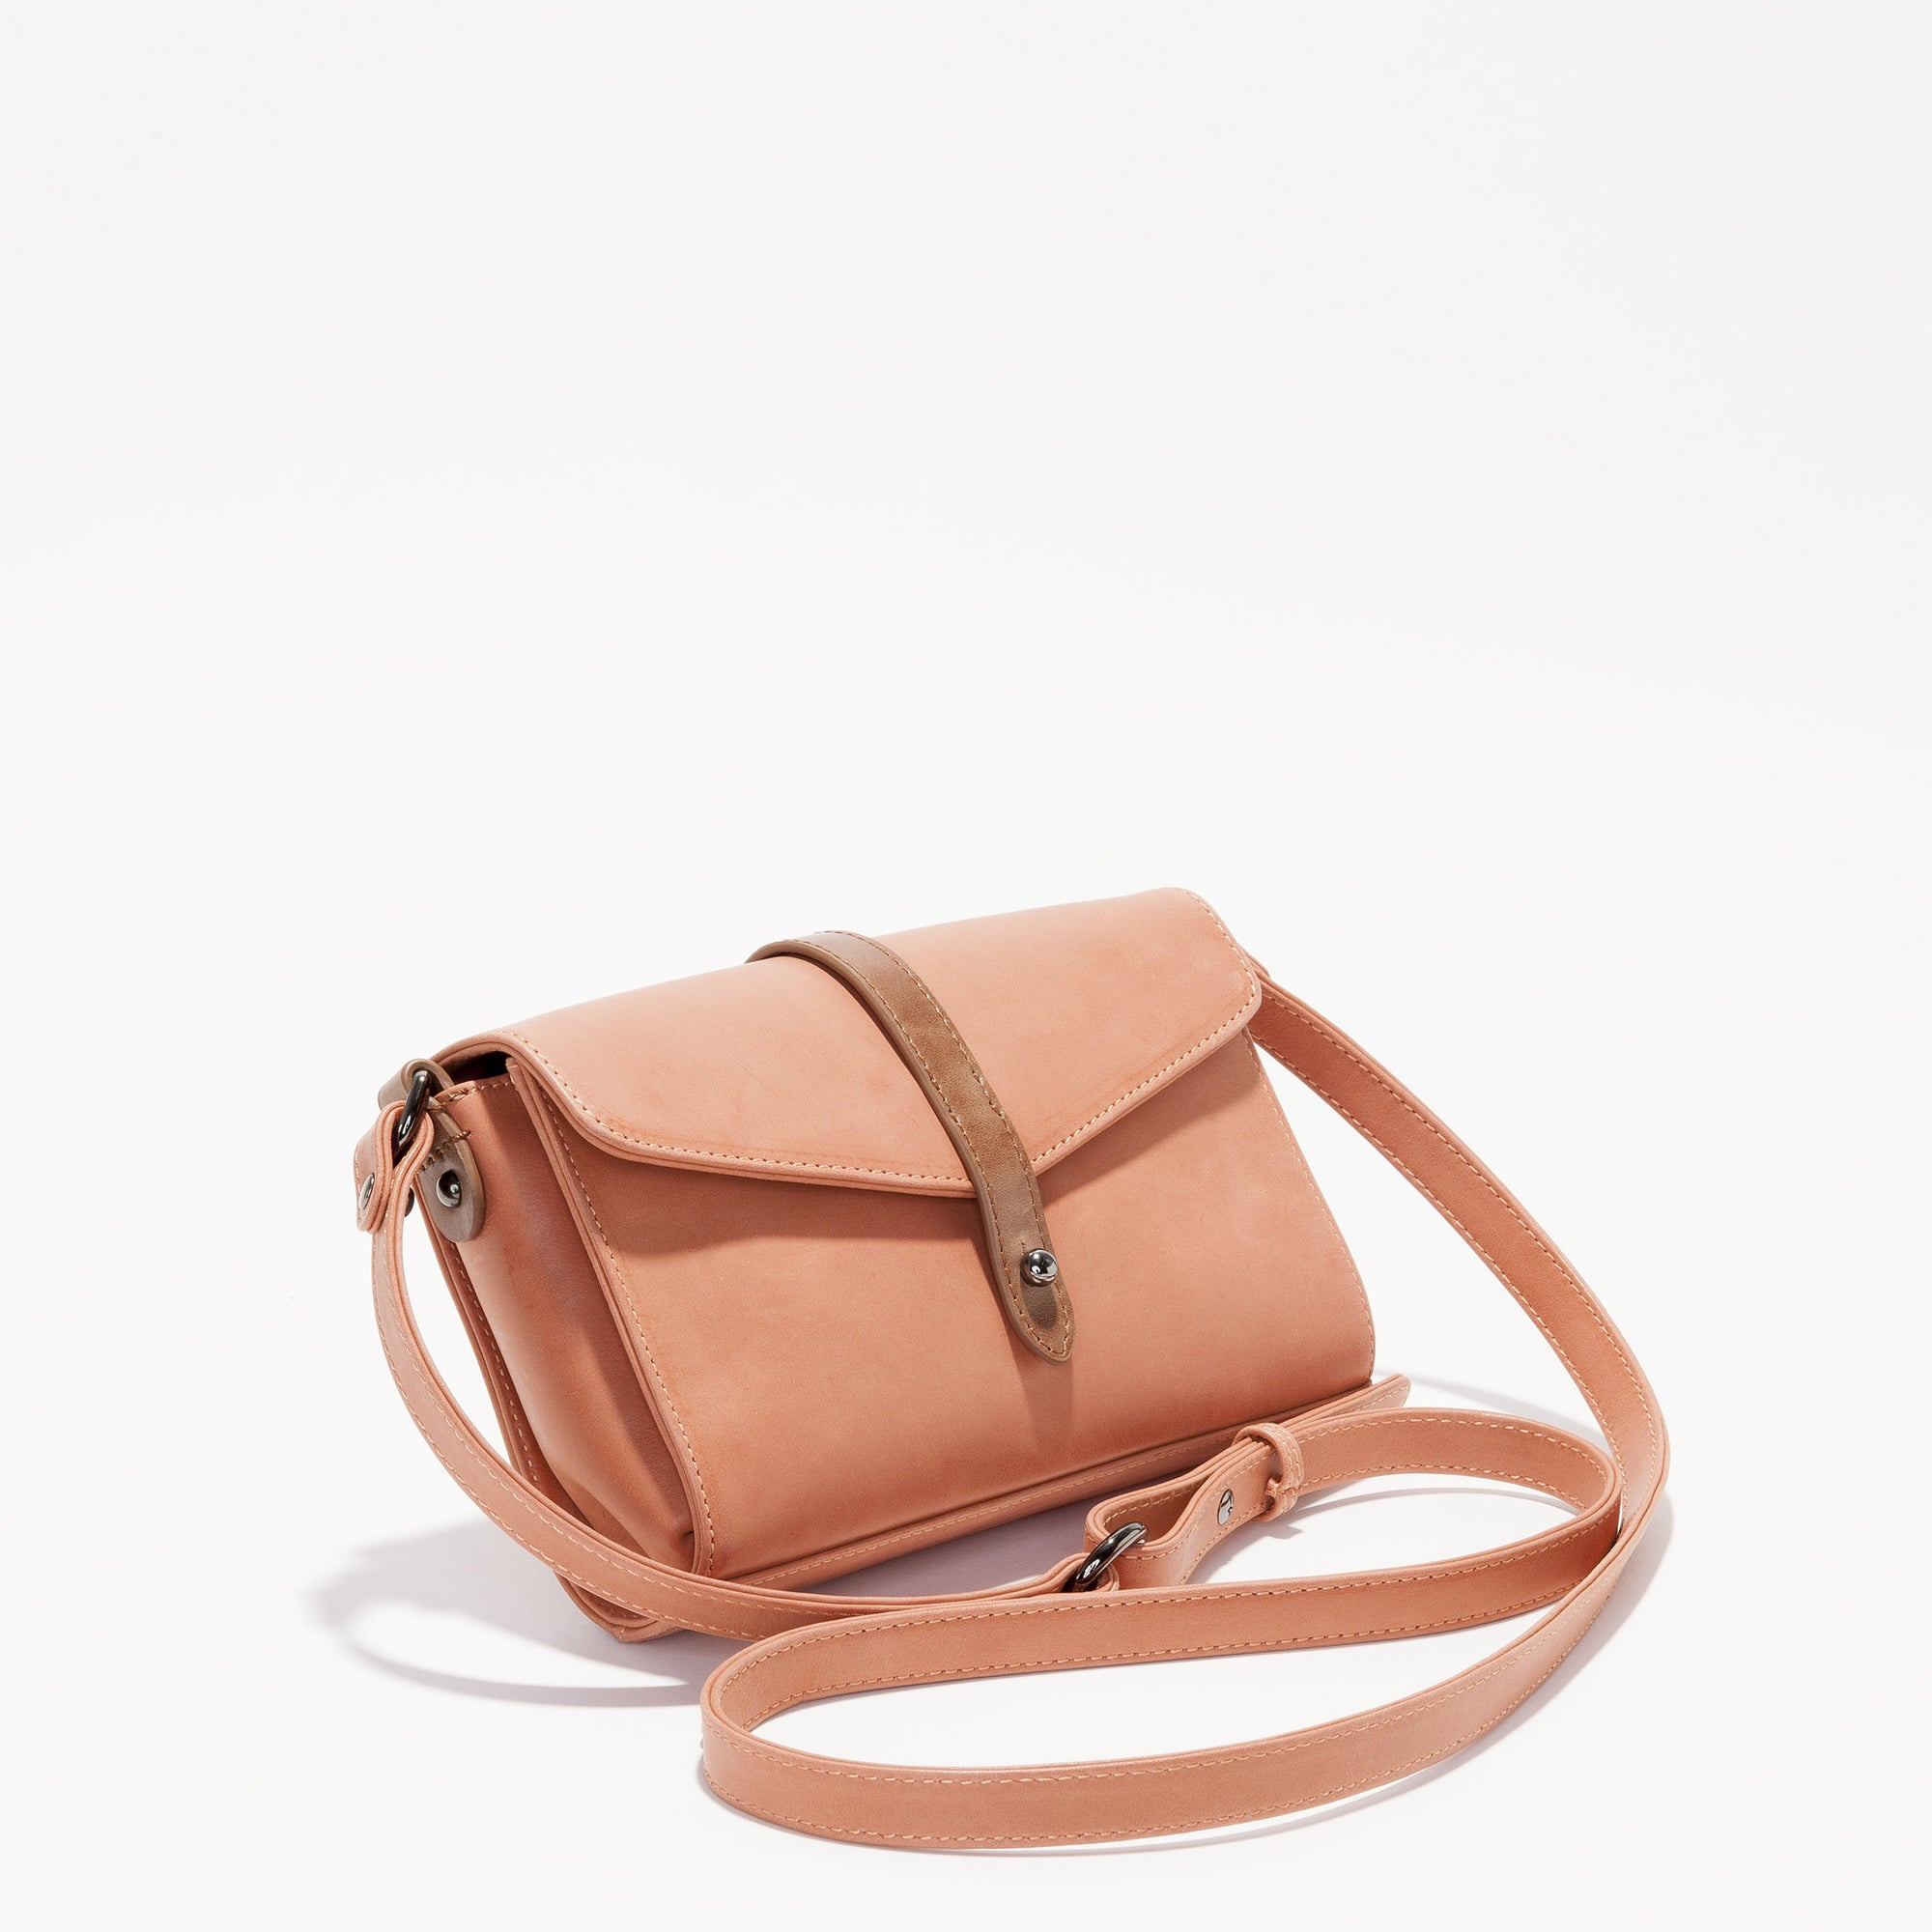 Harlequin Belle Trinity Shoulder Bag Purse Melon Tan Leather